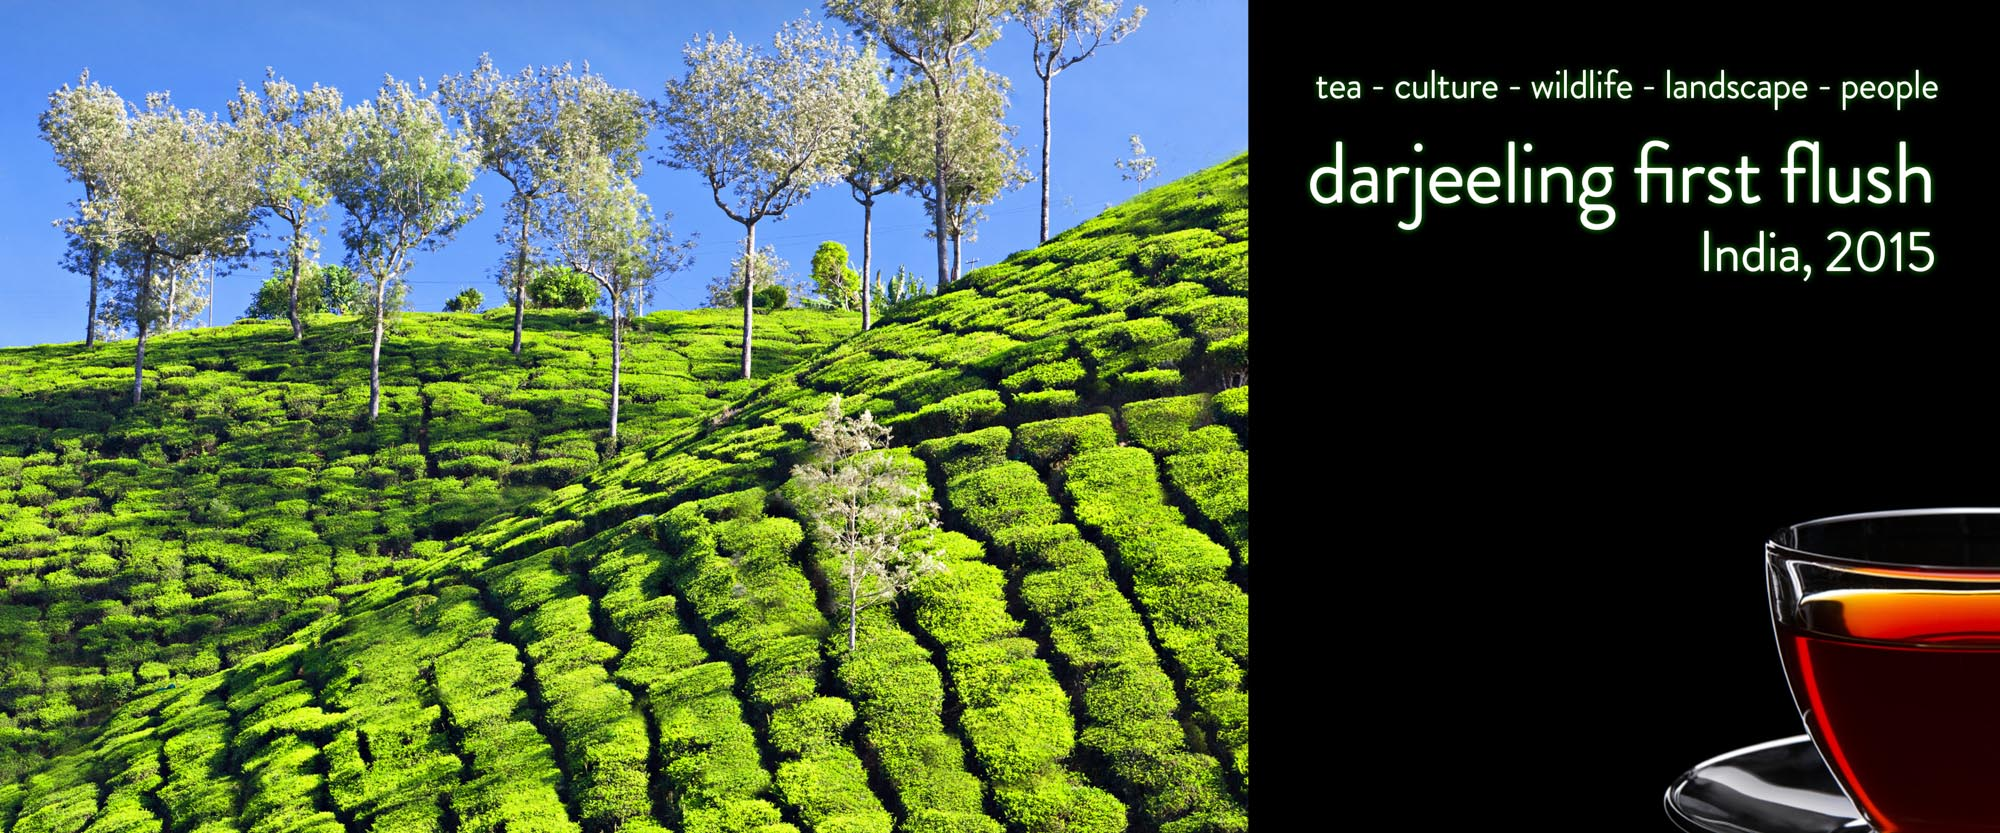 first_flush_darjeeling_2015